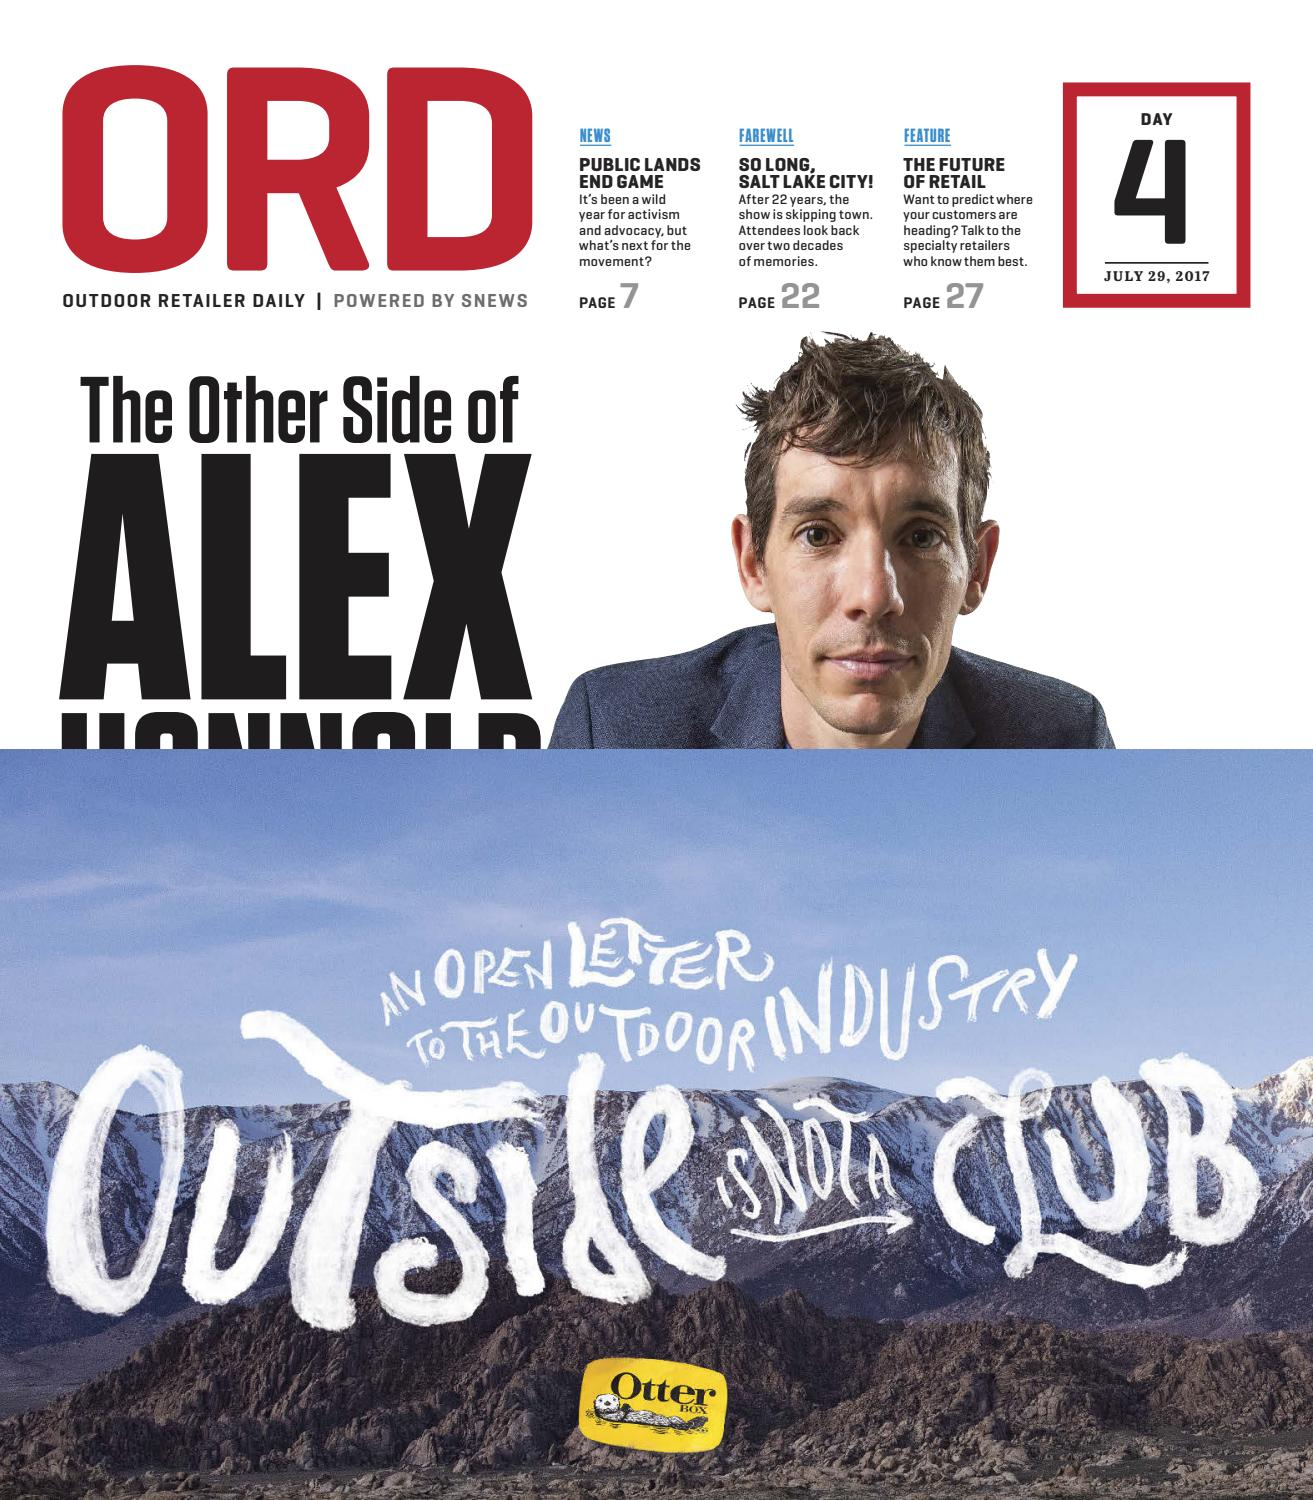 ord day4 summer 2017 by active interest media boulder issuu